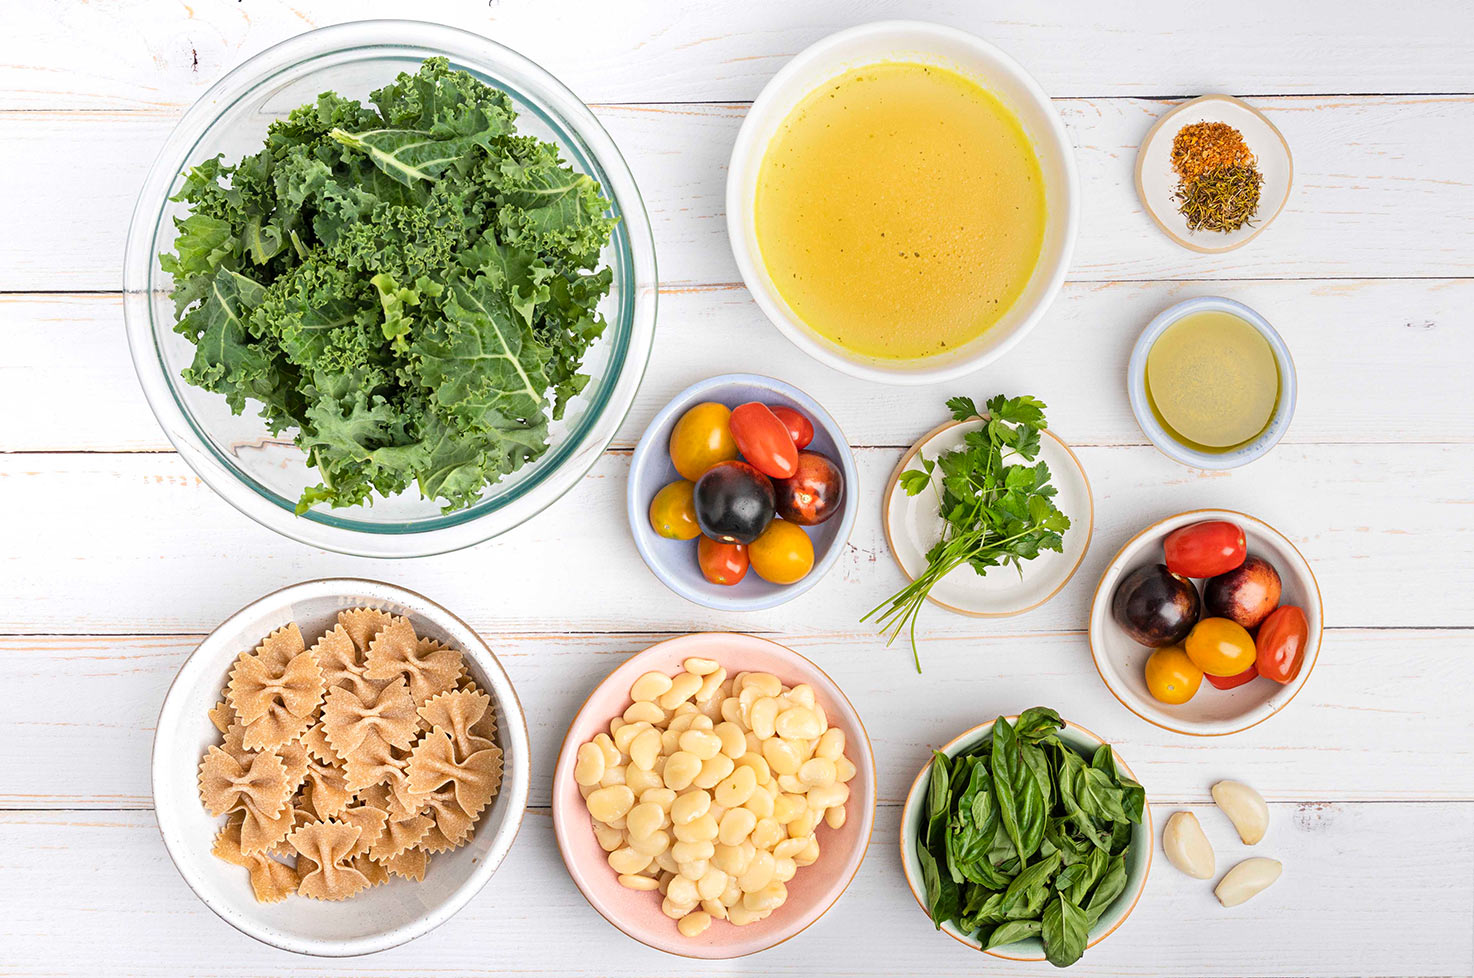 The ingredients for a casserole are laid out on a table, including chopped kale, vegetable stock, tomatoes, beans, pasta, basil, parsley, other spices garlic cloves | Hurry The Food Up